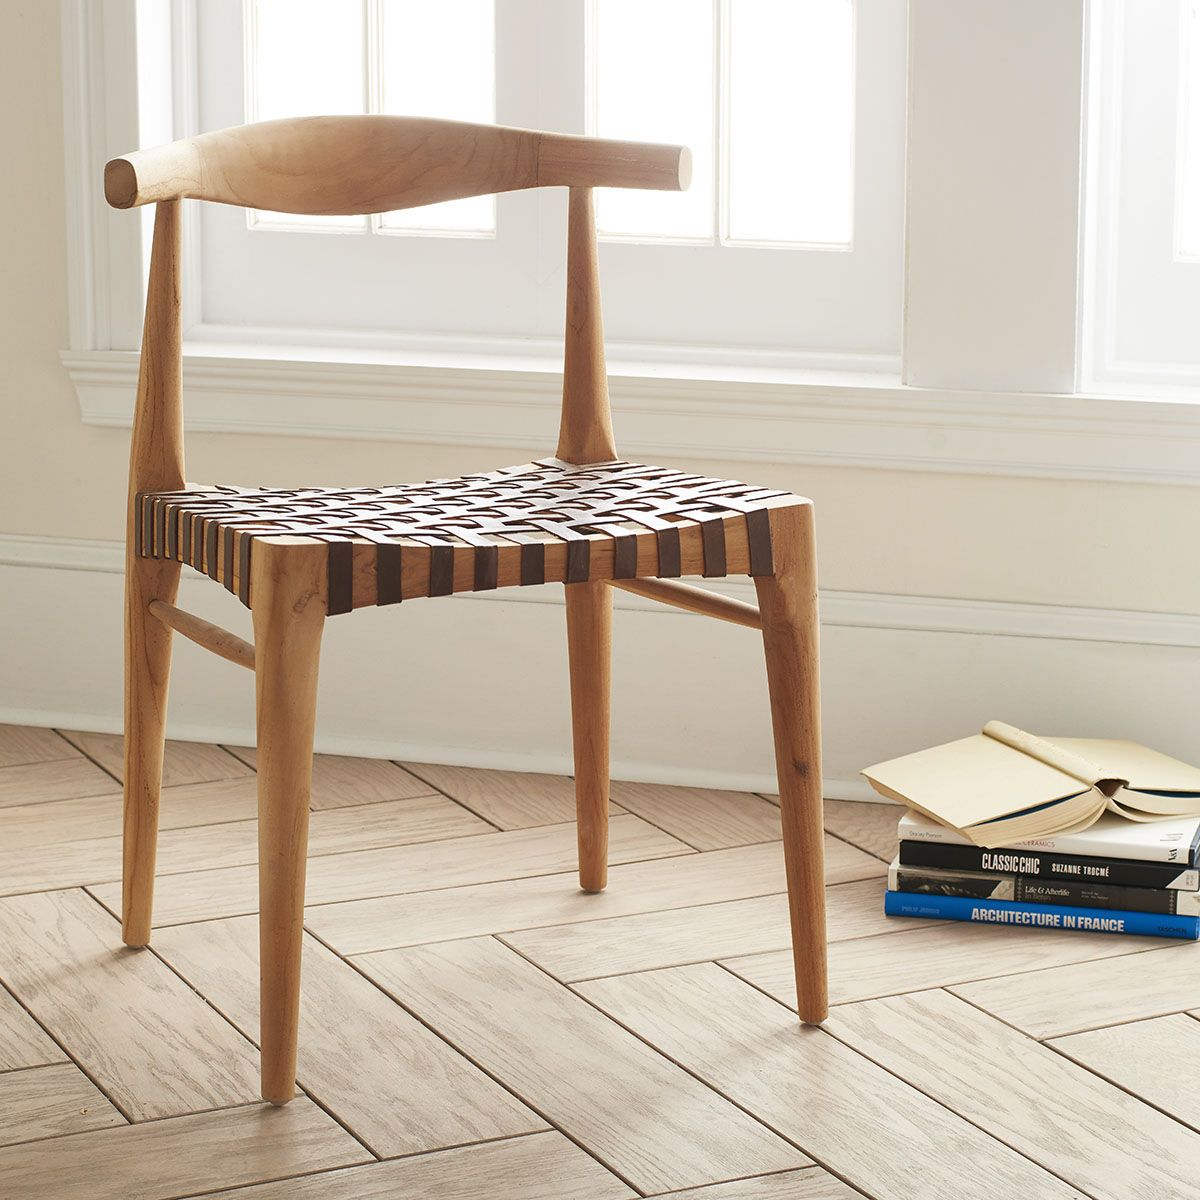 Teak and Woven Leather Chair Ercol dining chairs